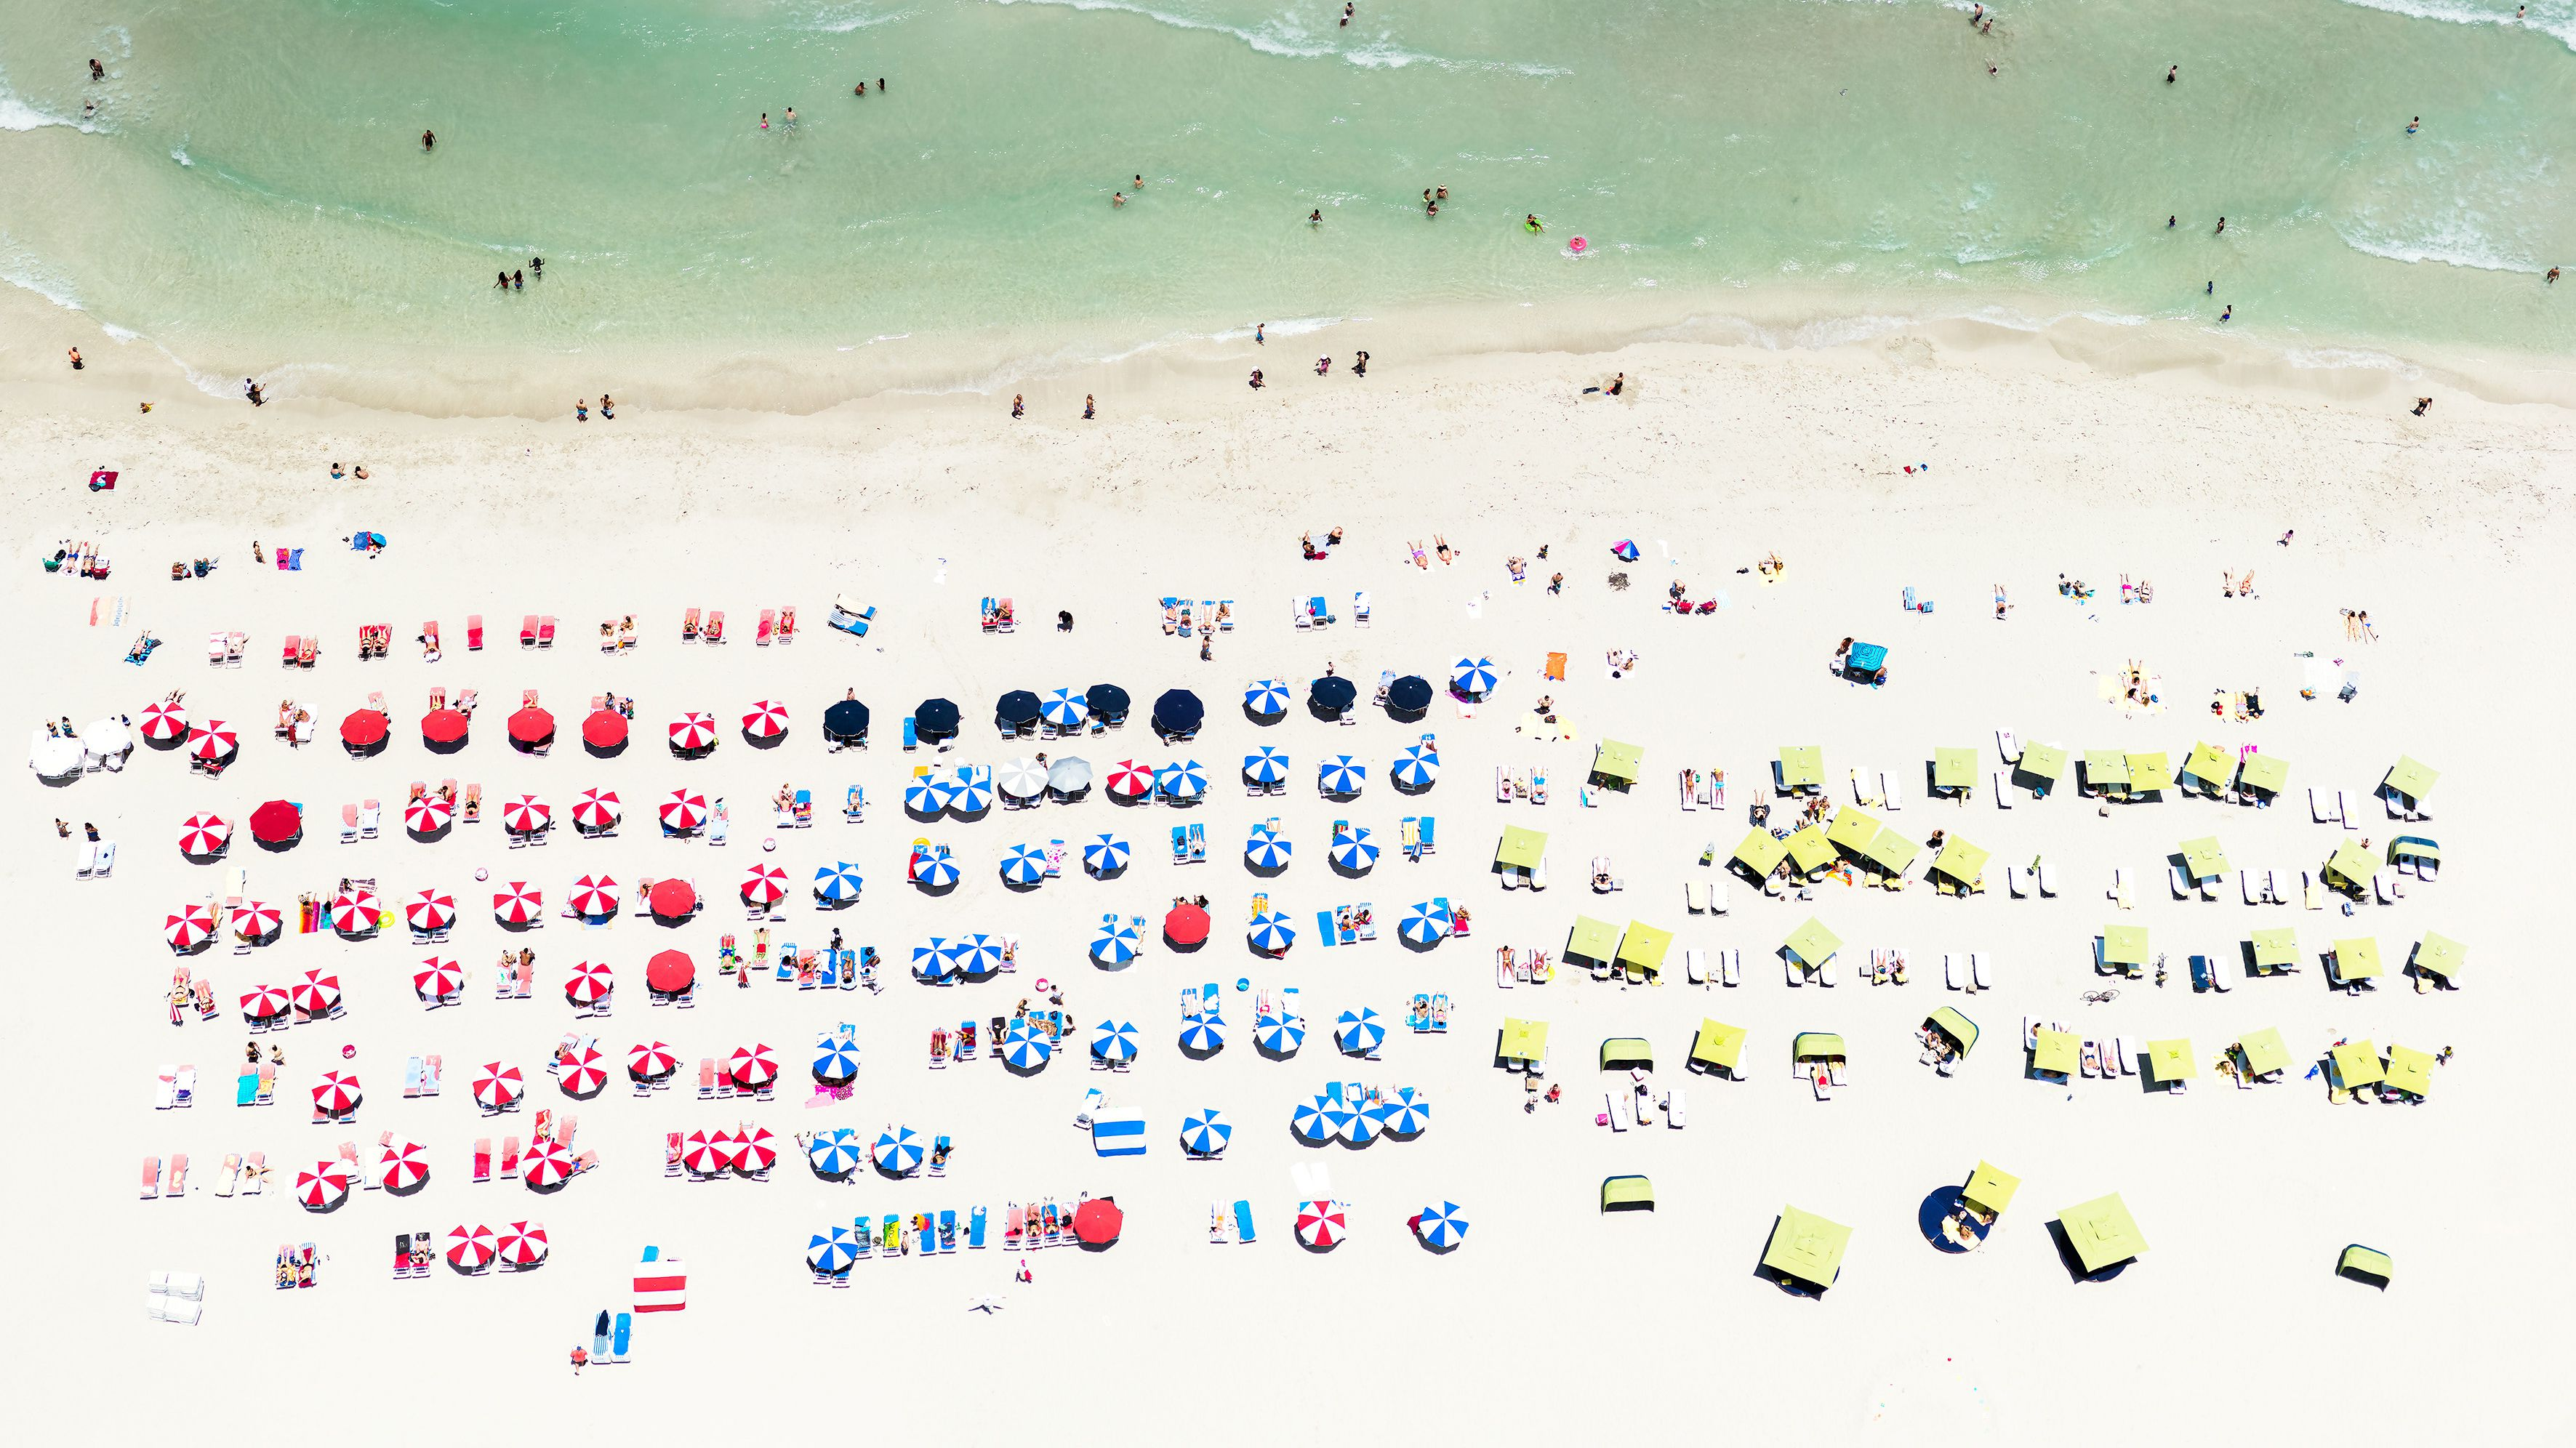 An aerial photograph of a beach in Miami